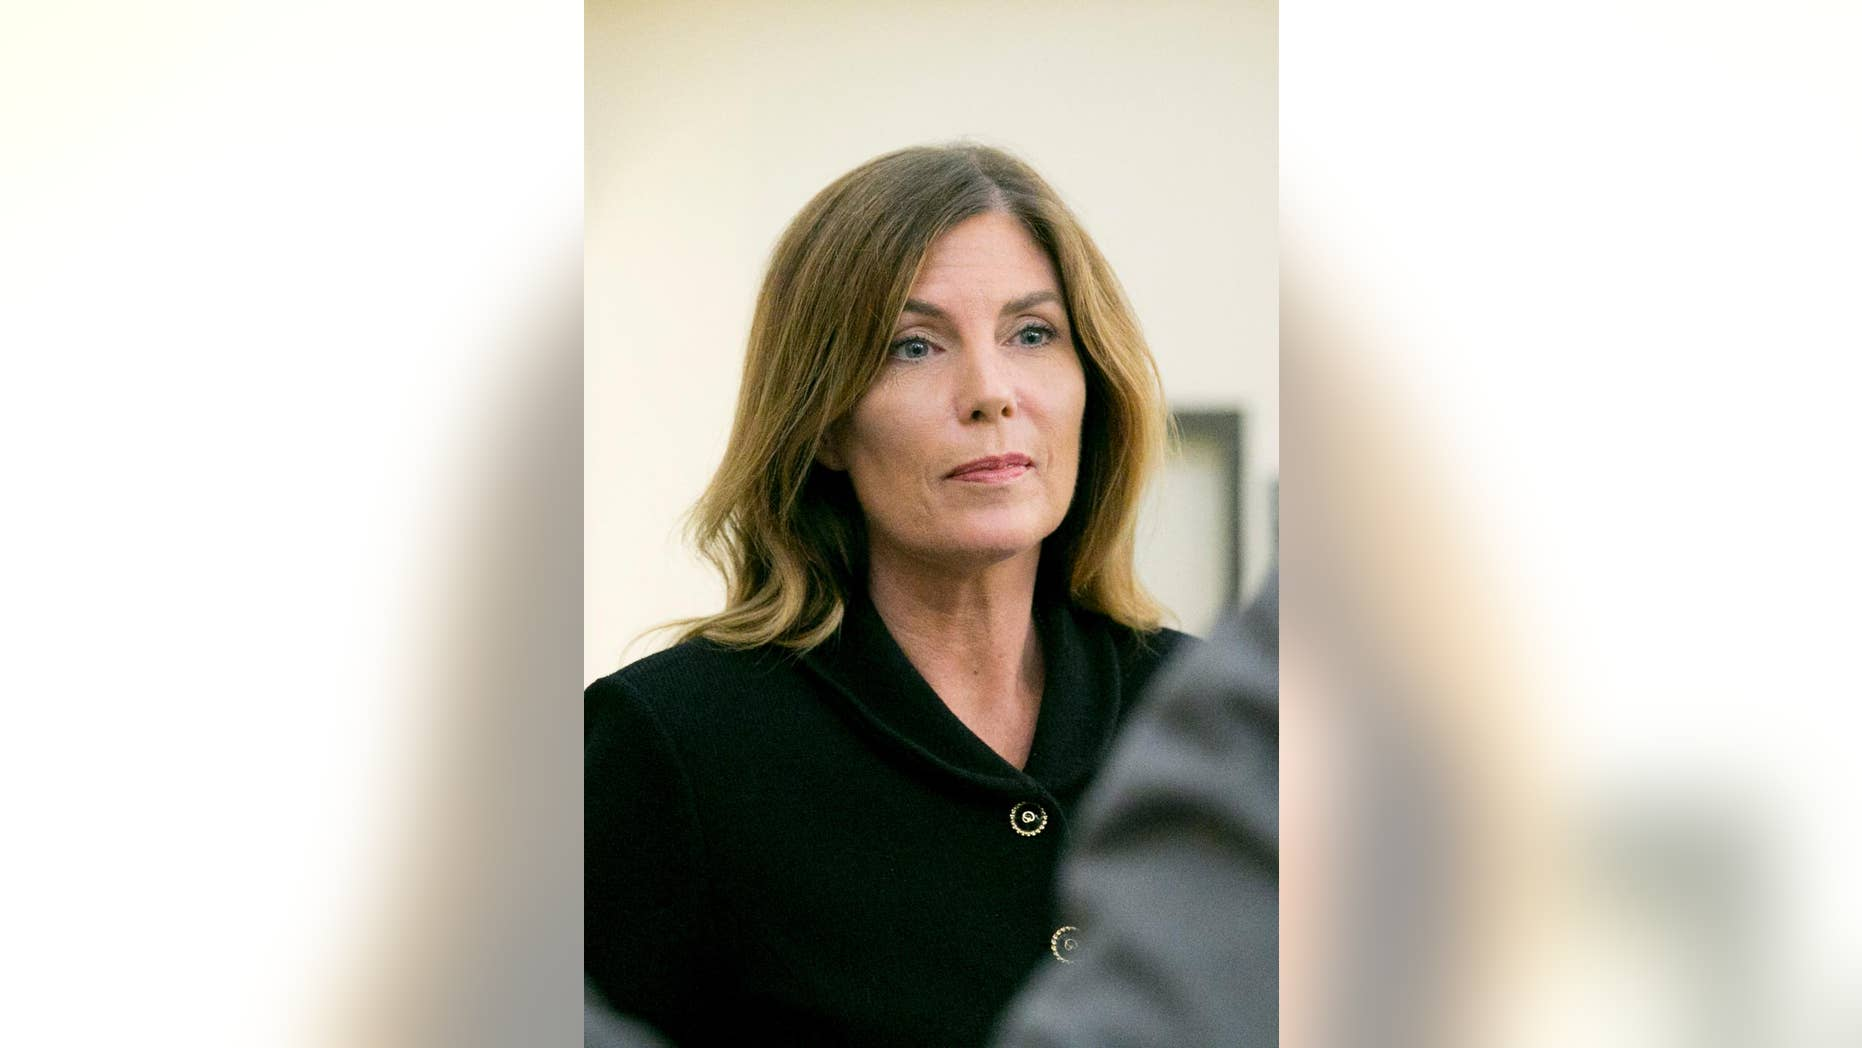 Pennsylvania Attorney General Kathleen Kane leaves court during her trial in 2016. (Jessica Griffin/The Philadelphia Inquirer via AP, Pool)